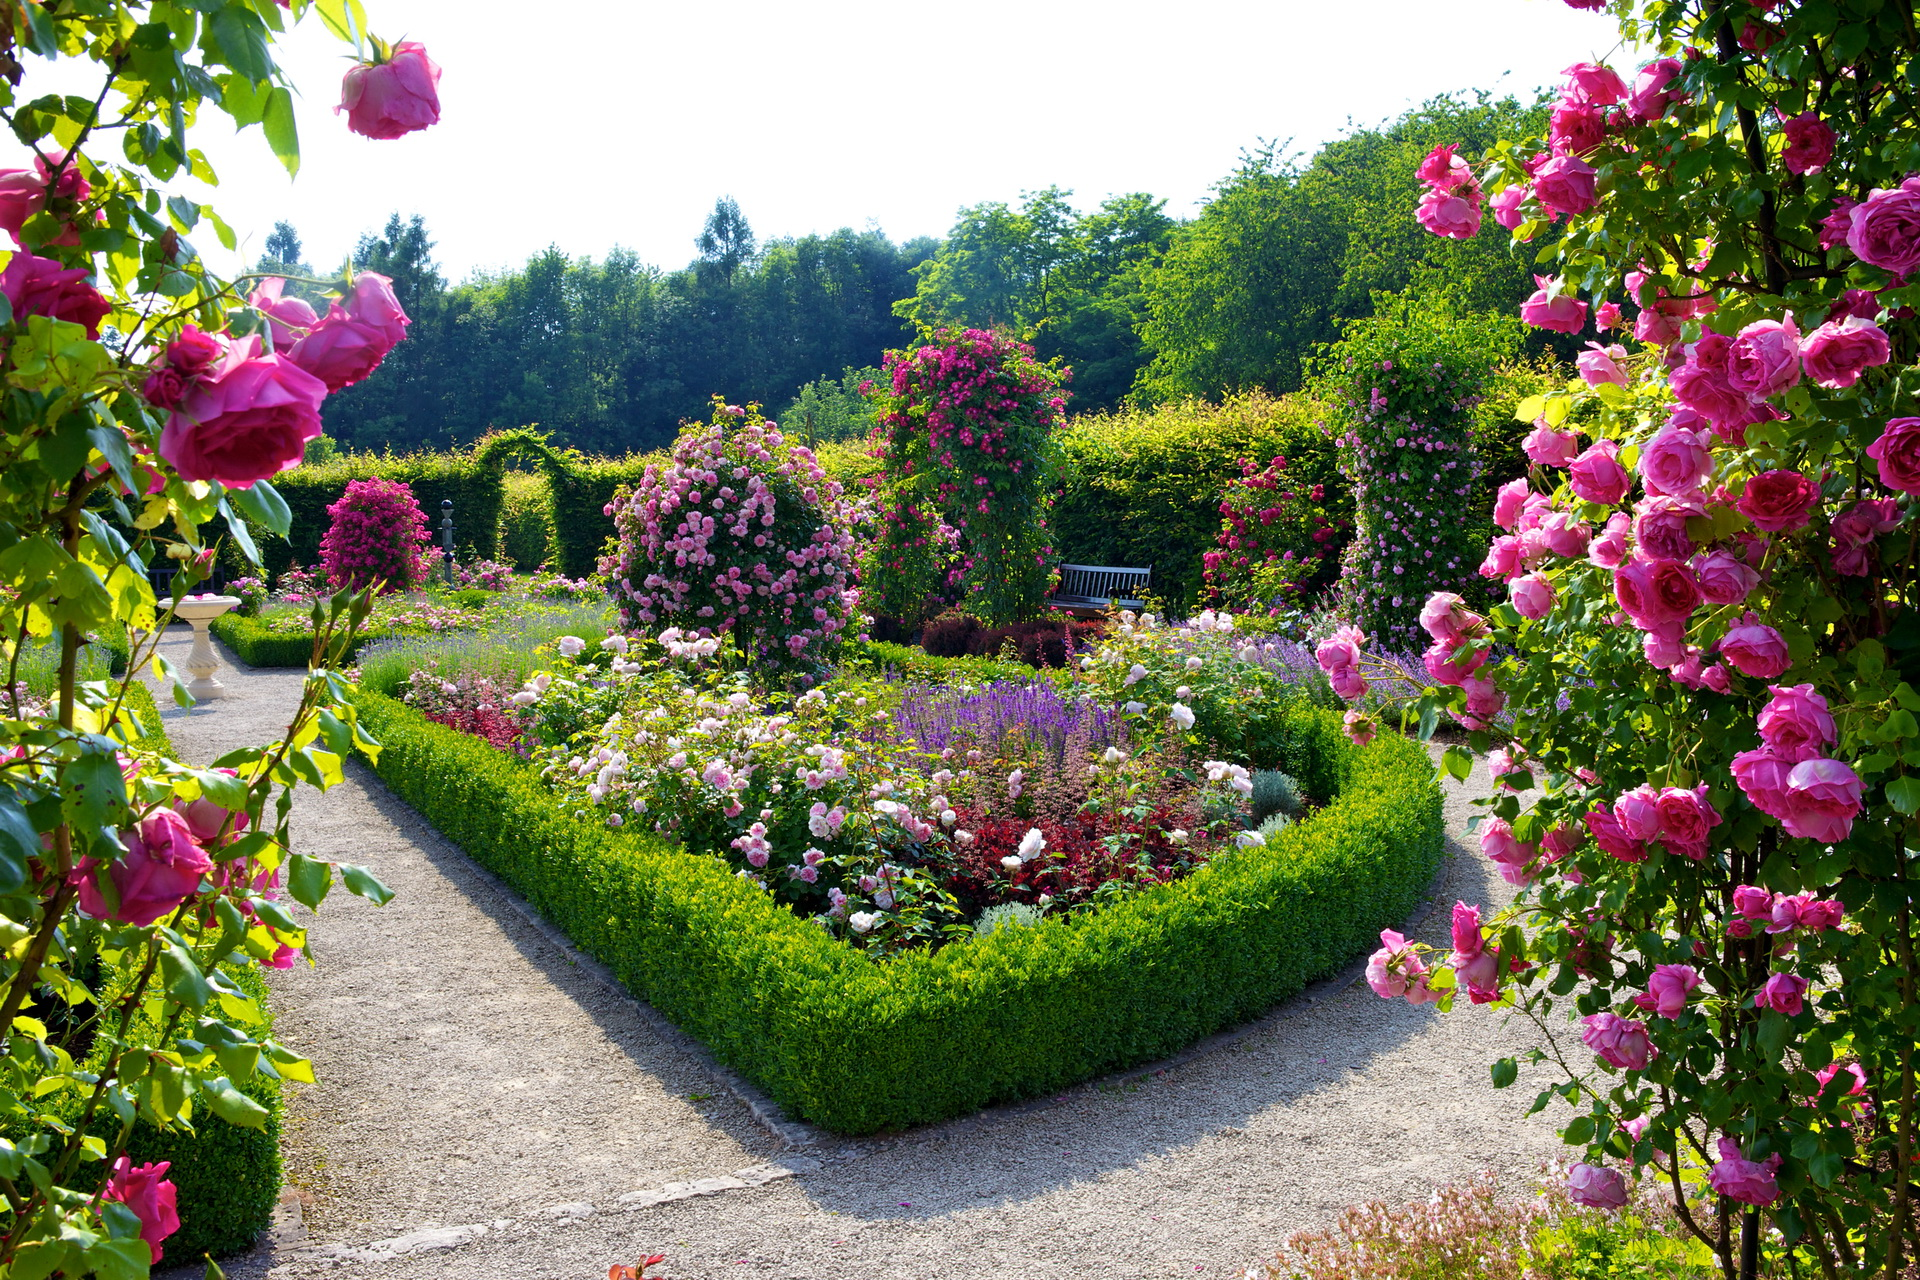 5 nature landscapesotherflower garden free hd wallpapers 5 nature landscapesotherflower garden free hd wallpapers HD